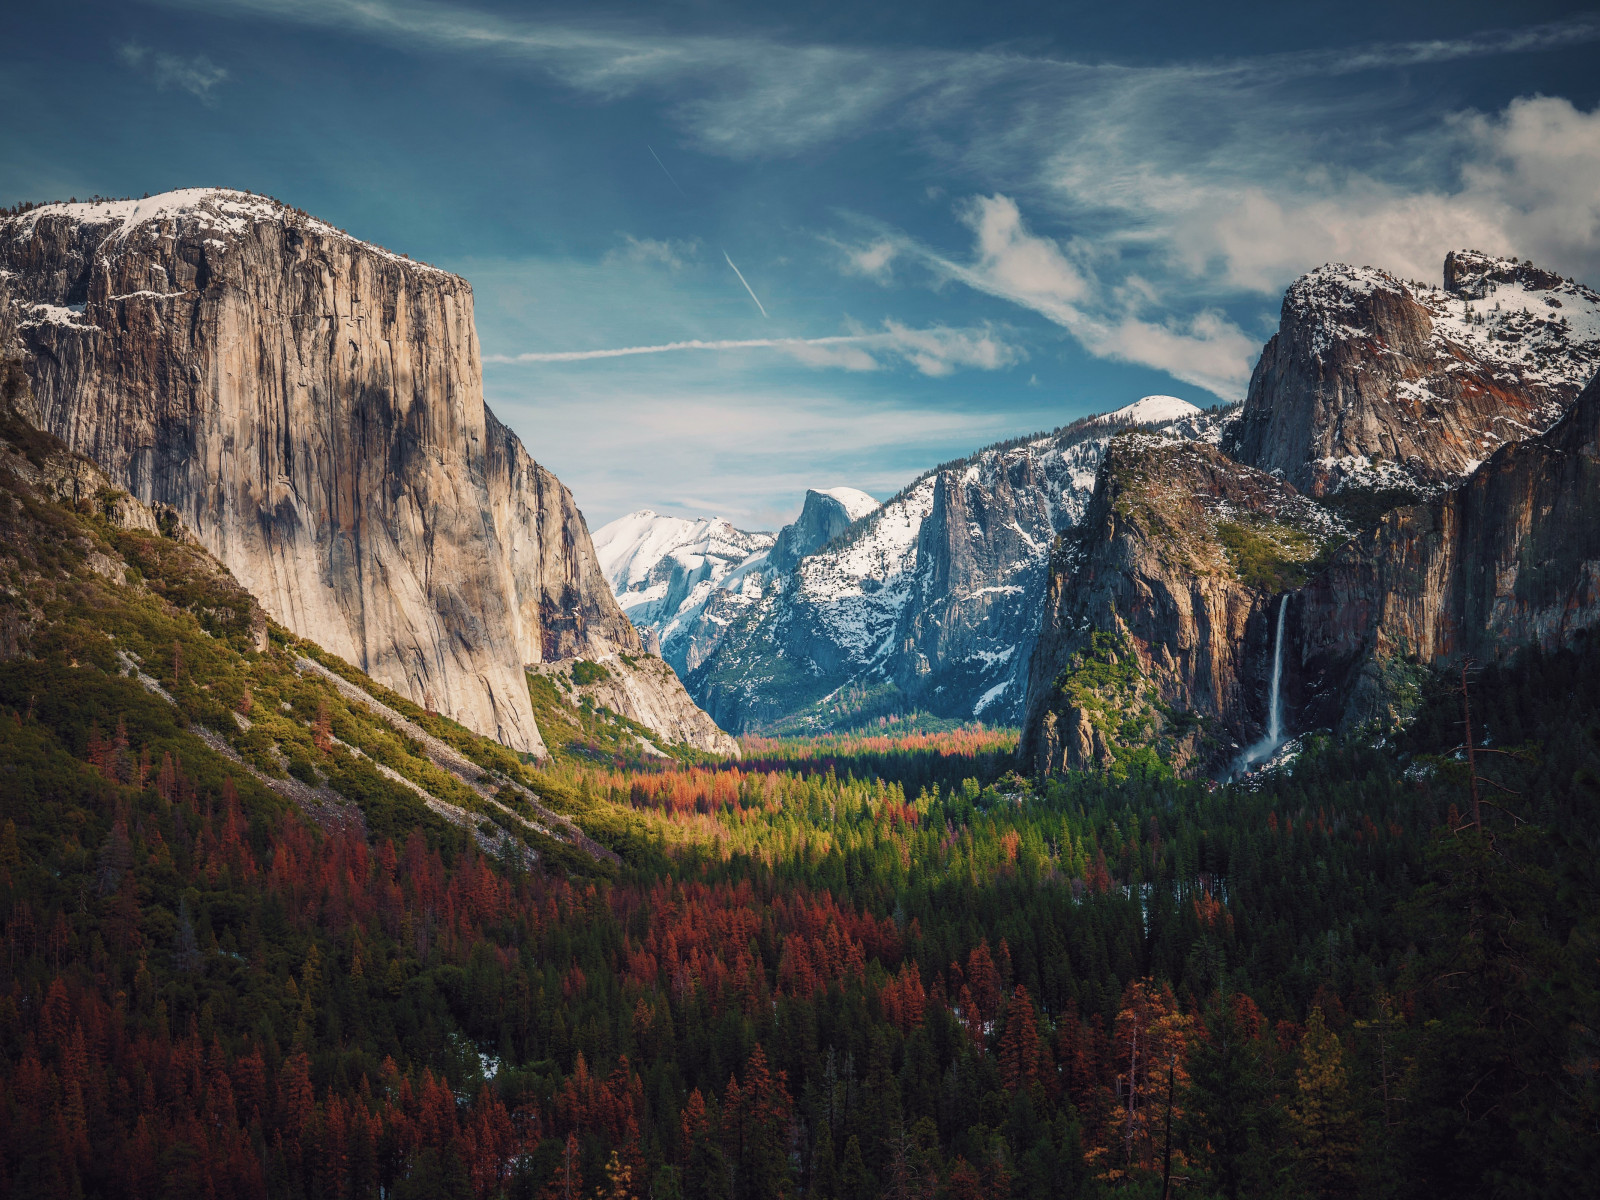 Best View from Yosemite | 1600x1200 wallpaper